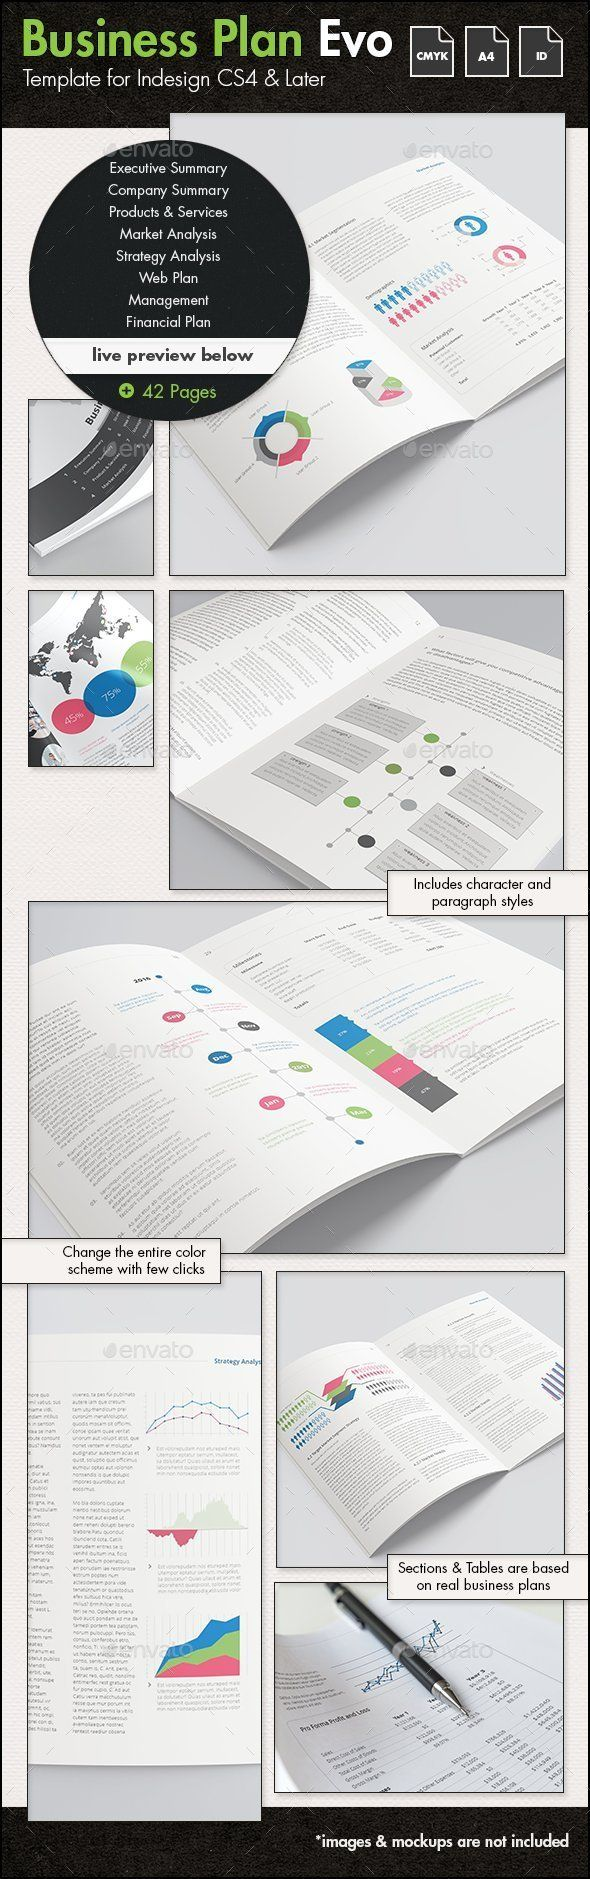 Business Plan Evolved - A4 Portrait Template